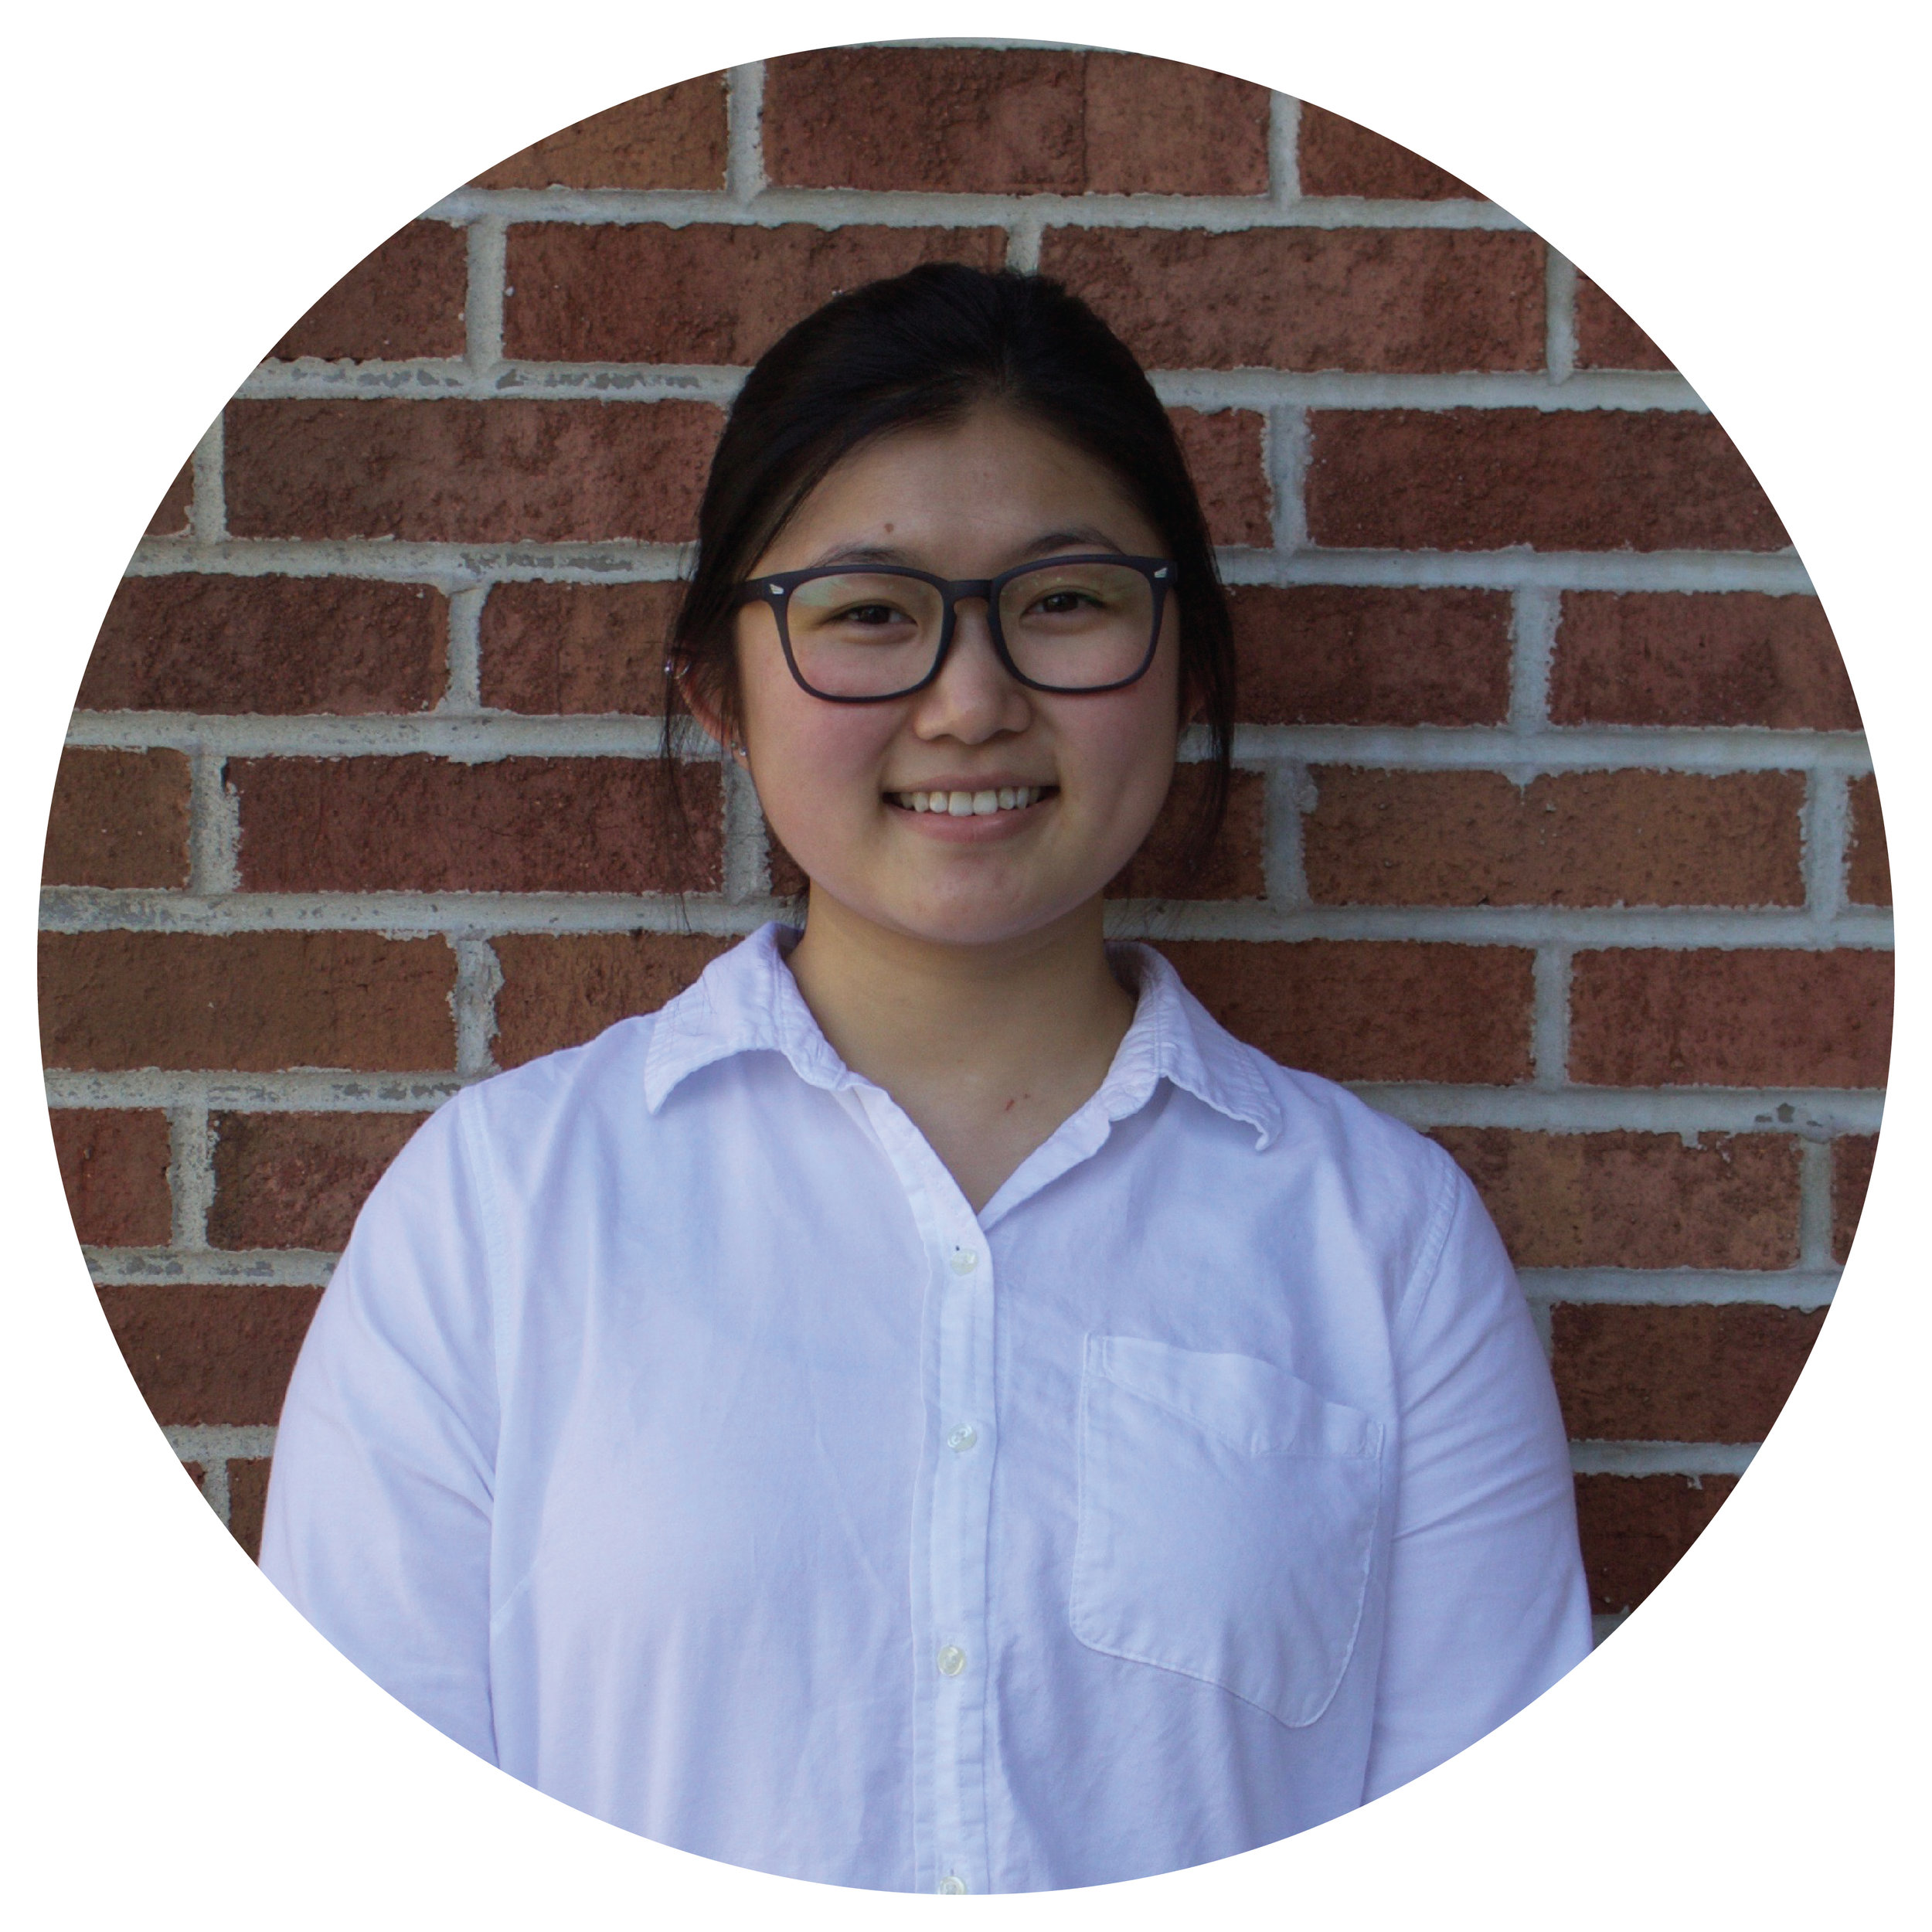 Erica Shin (MIT/Georgia Tech)    SAT 1550 / ACT 34   Erica is a Biomechanical Engineer from MIT. She is currently continuing her research at Georgia Tech where she has been involved with the Tissue Mechanics Lab with Dr. Wei Sun since 2015 and is in the progress of publishing a paper as a co-author for the Biomaterials Journal.  During her time as an Alexander Academy test prep tutor, Erica has worked with many students and seen positive results in all of them. She loves getting to know each student individually in order to tailor the teaching experience to each student's needs.